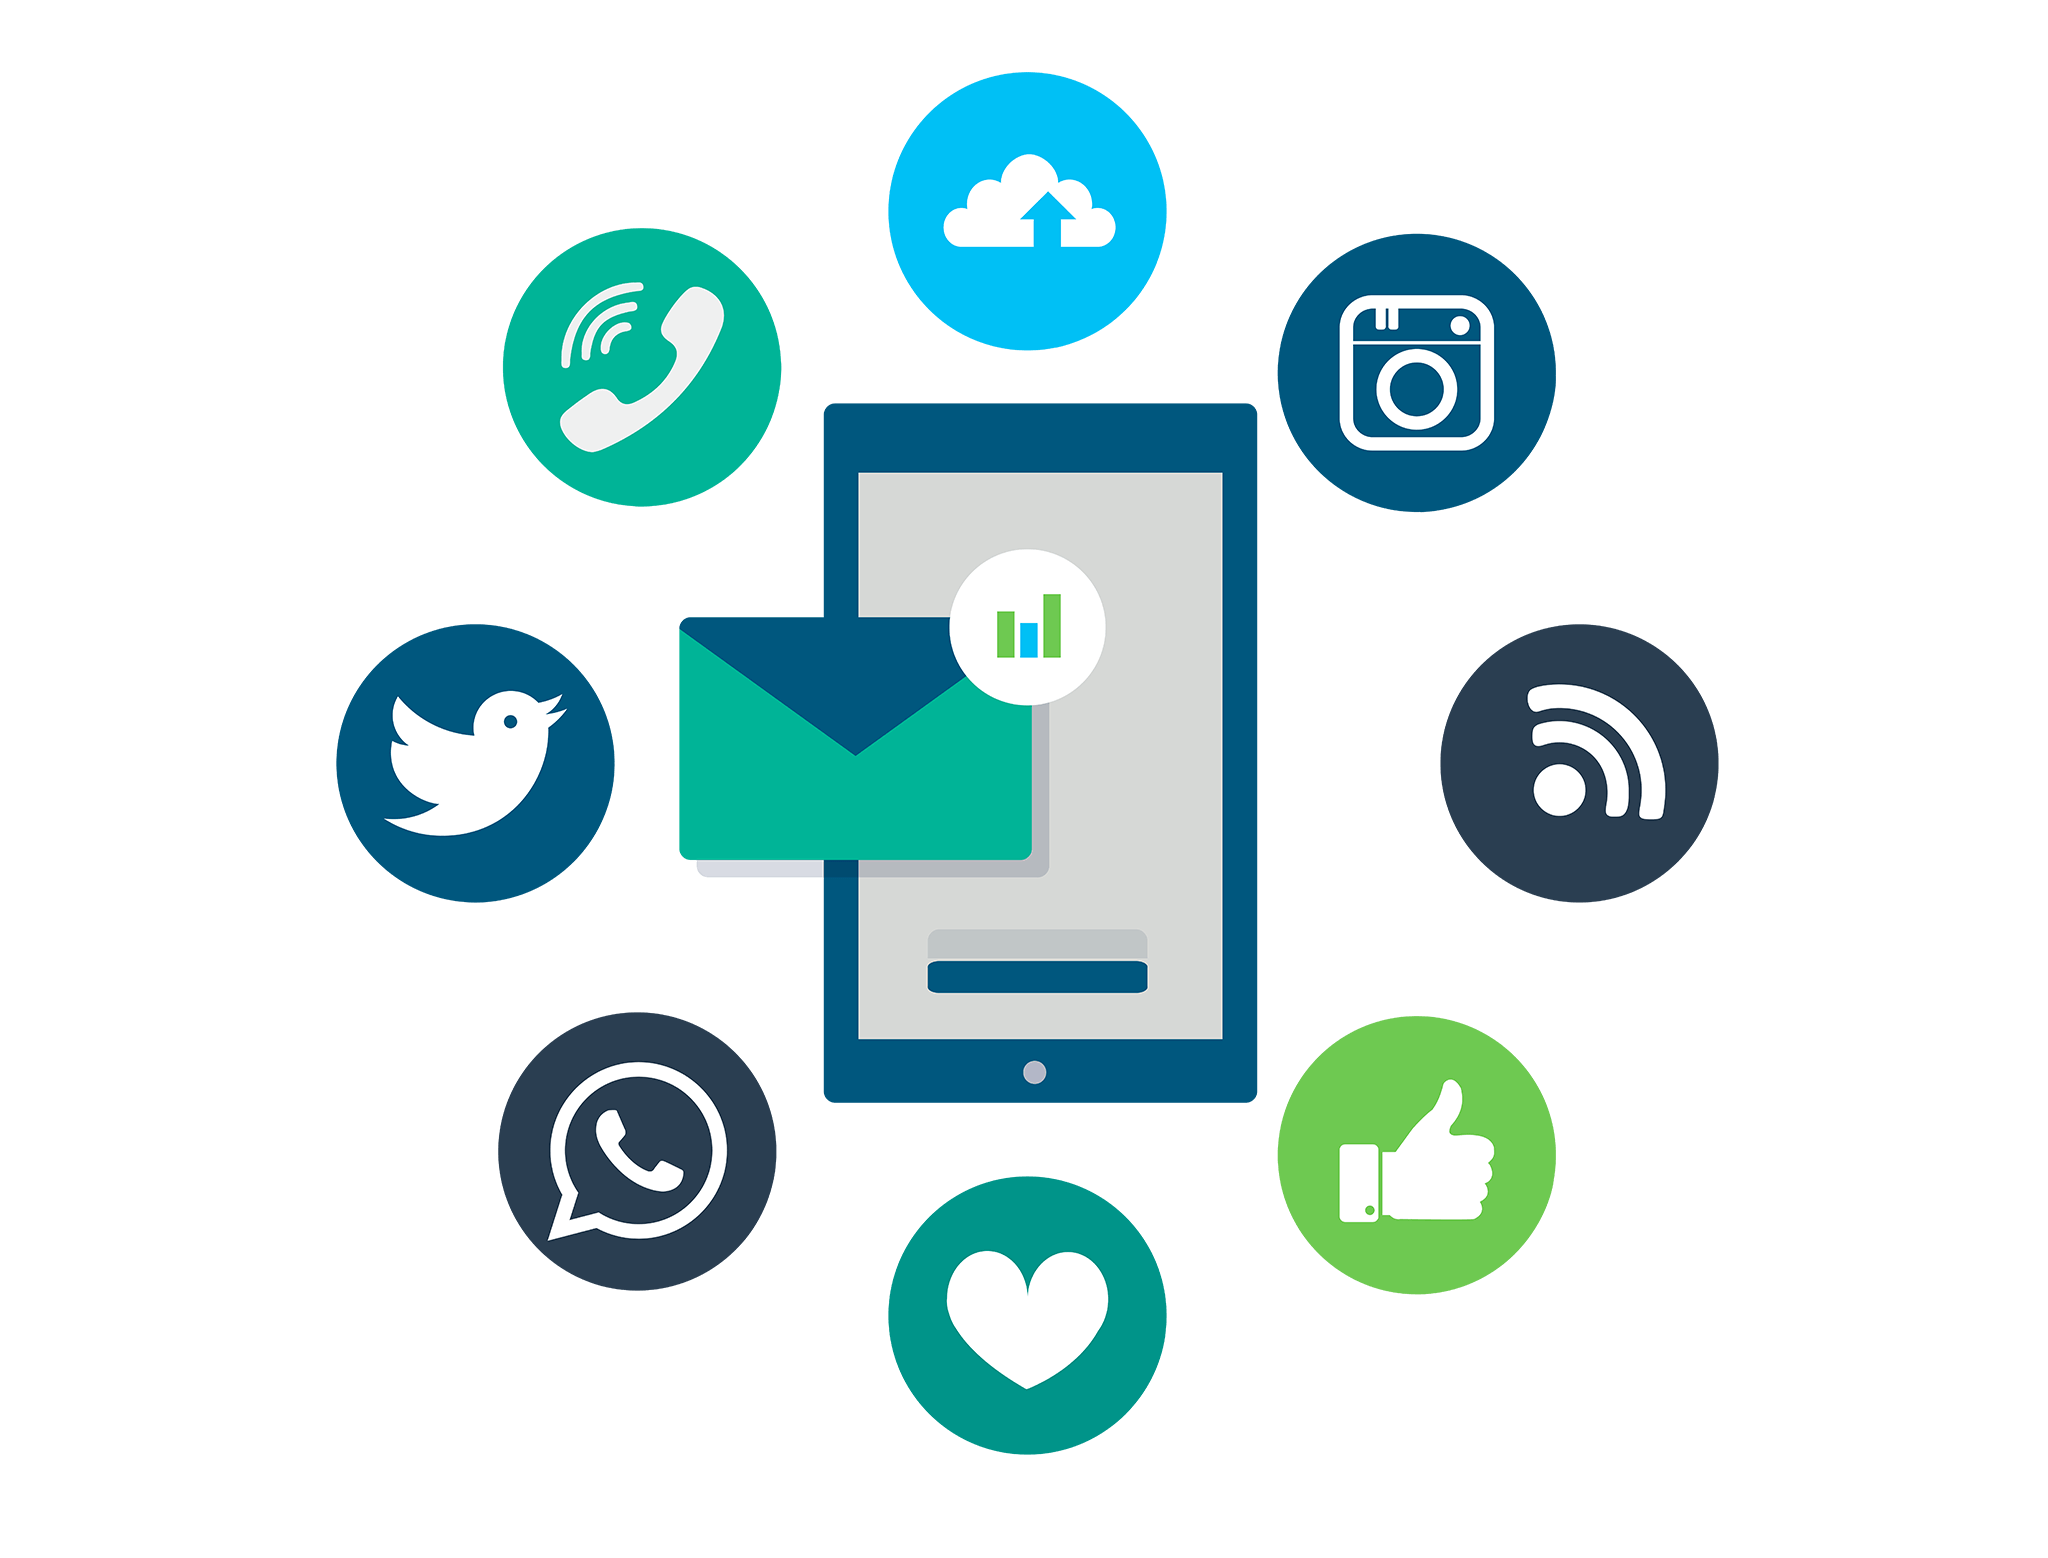 Illustration of a smartphone with icons around it showing various social media logos